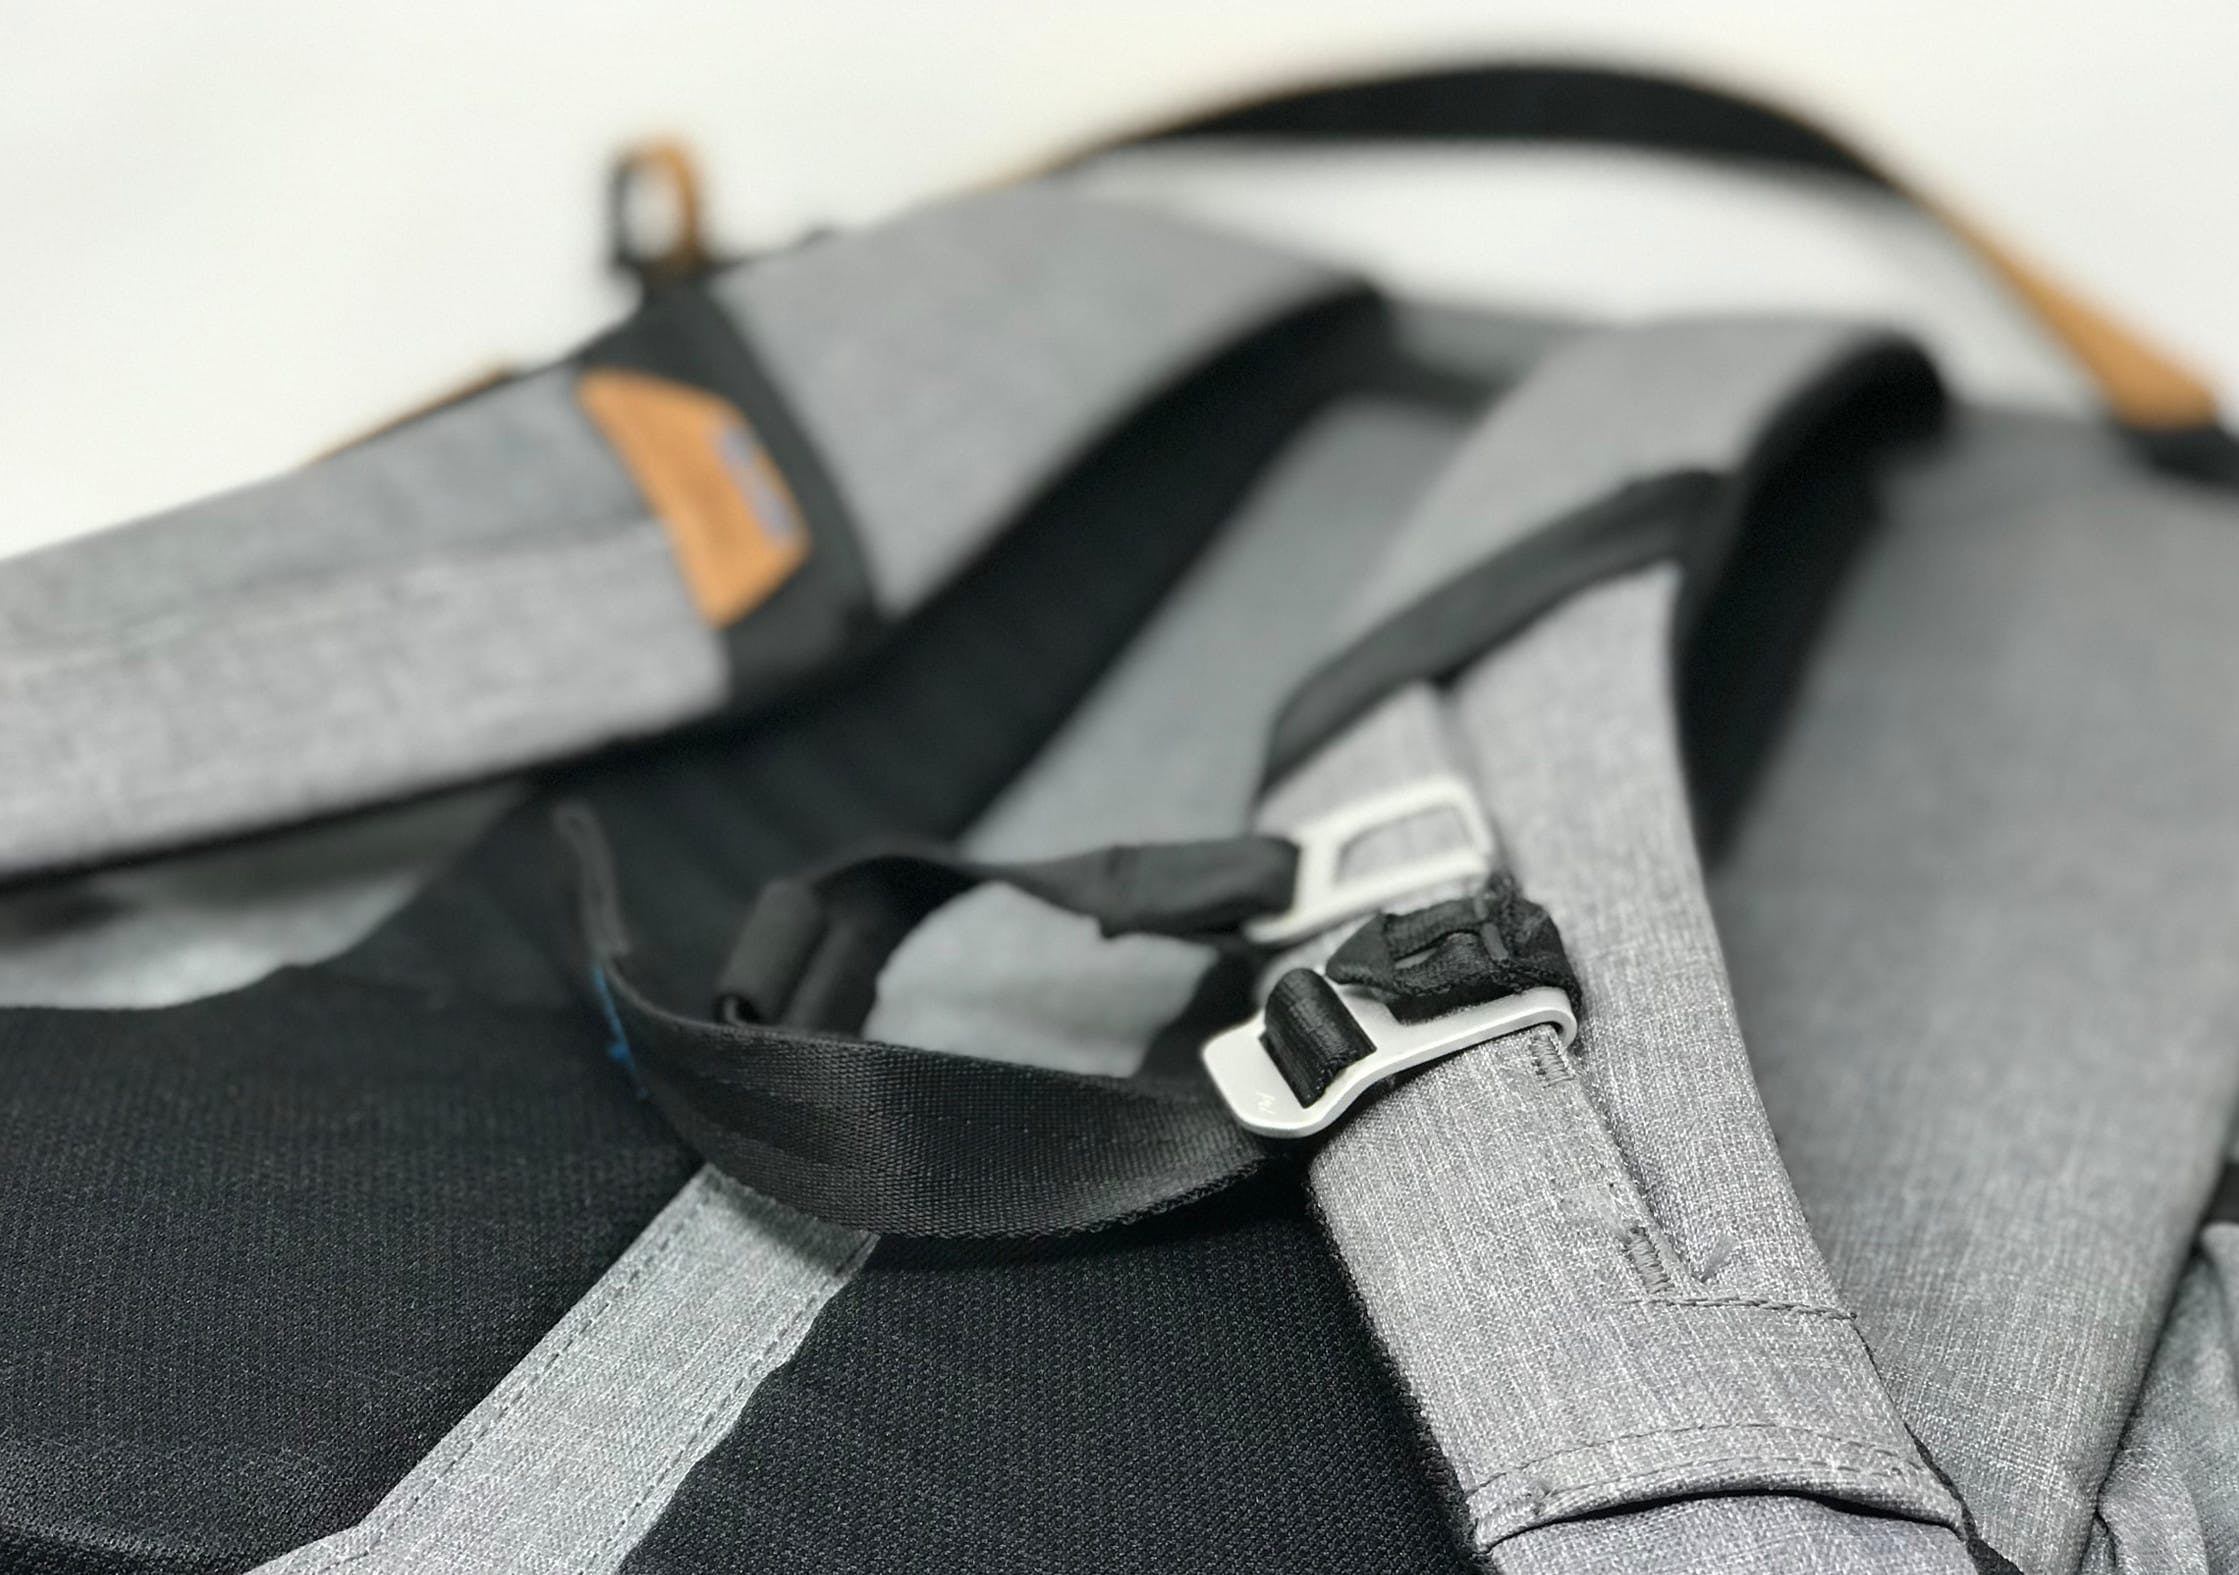 Peak Design Everyday Backpack sternum strap.